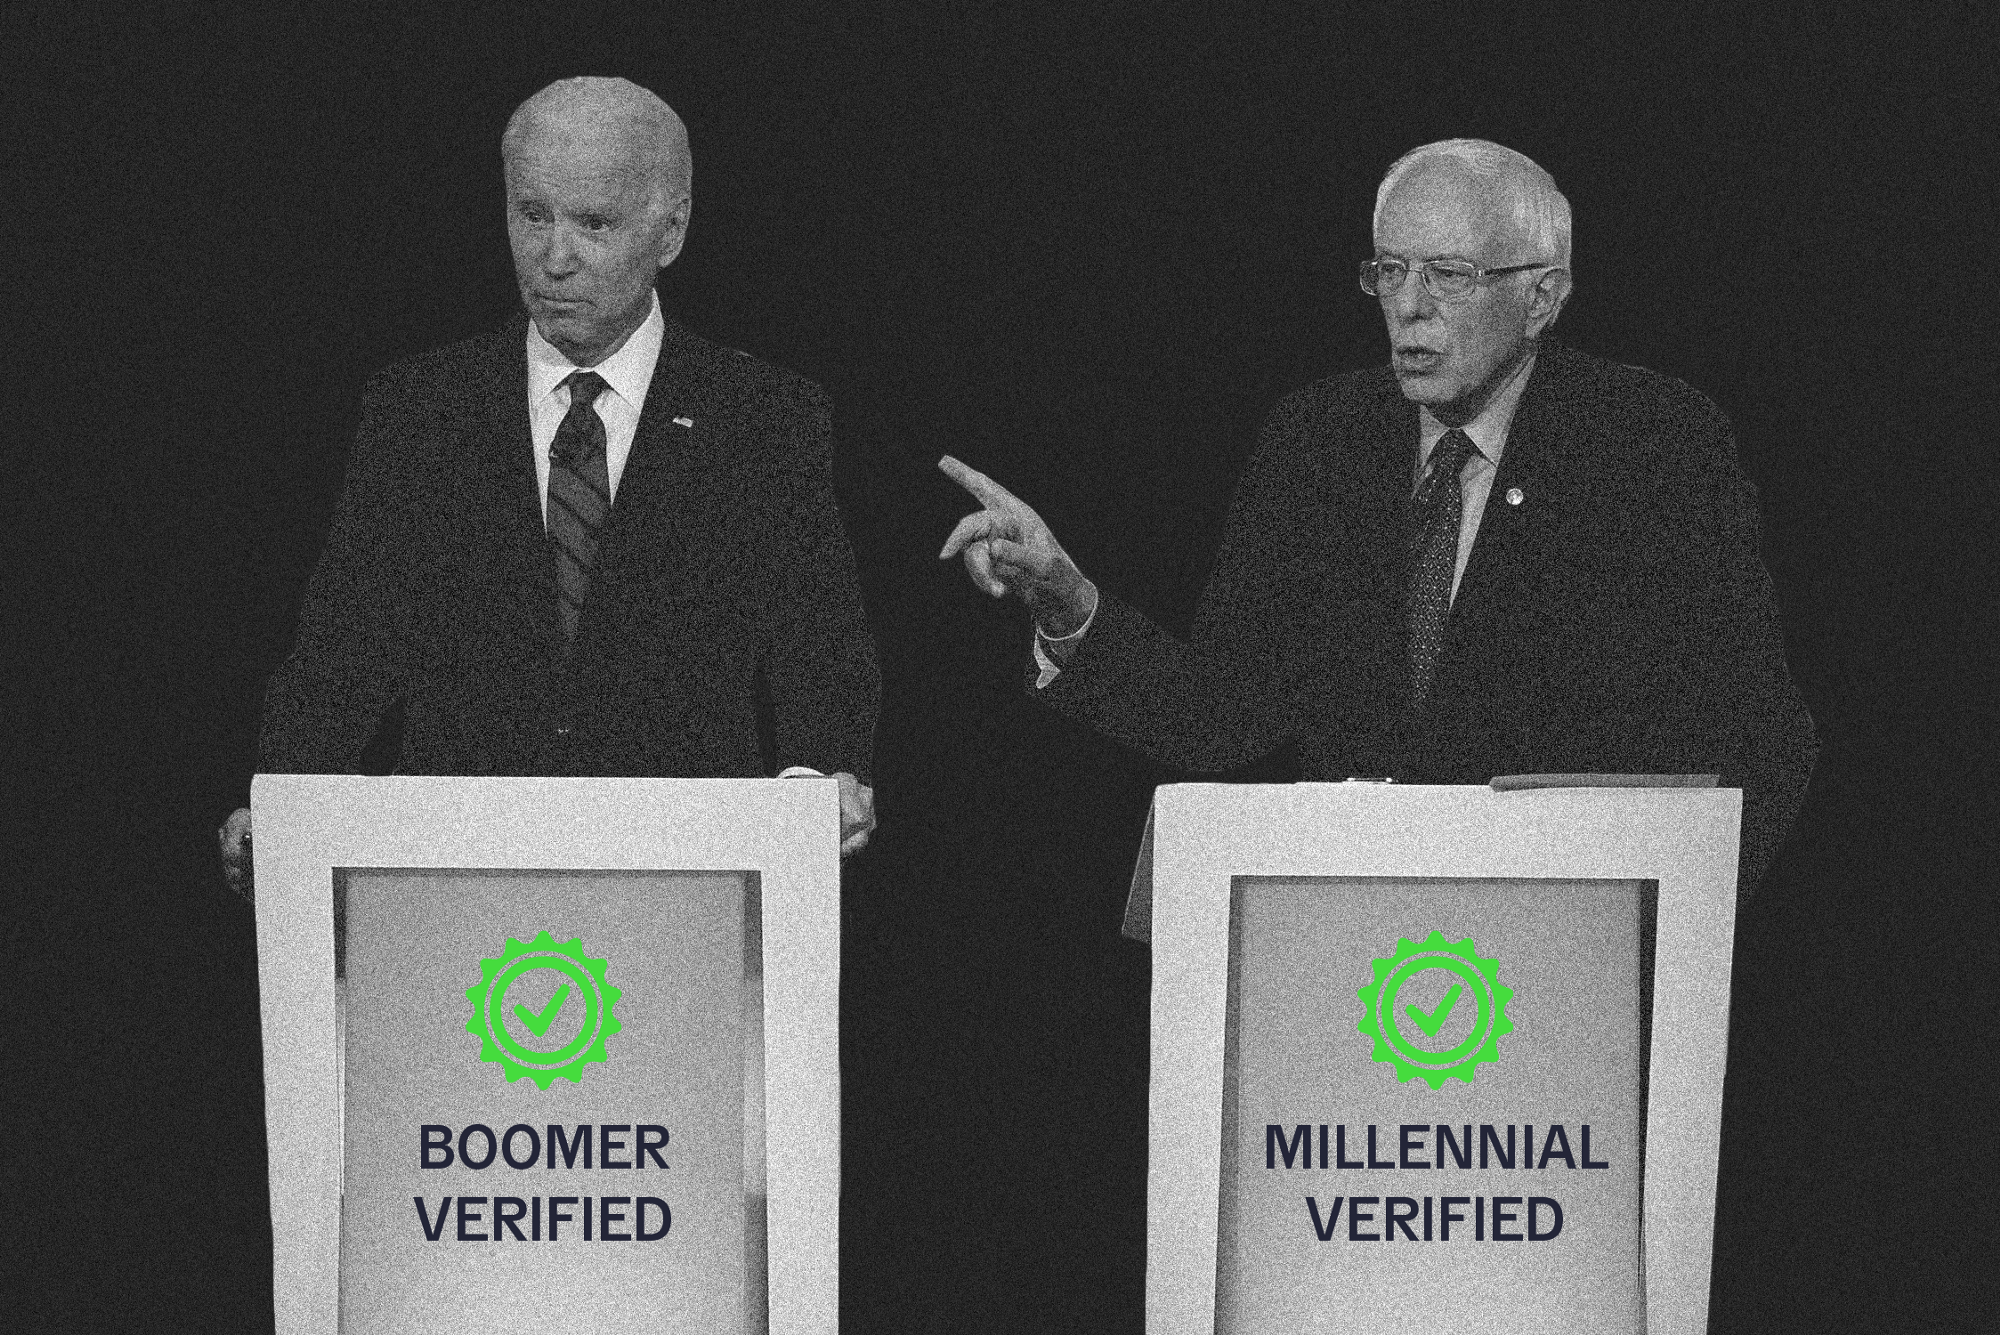 """Joe Biden and Bernie Sanders at separate podiums that say """"Boomer Verified"""" and """"Millennial Verified"""" respectively."""